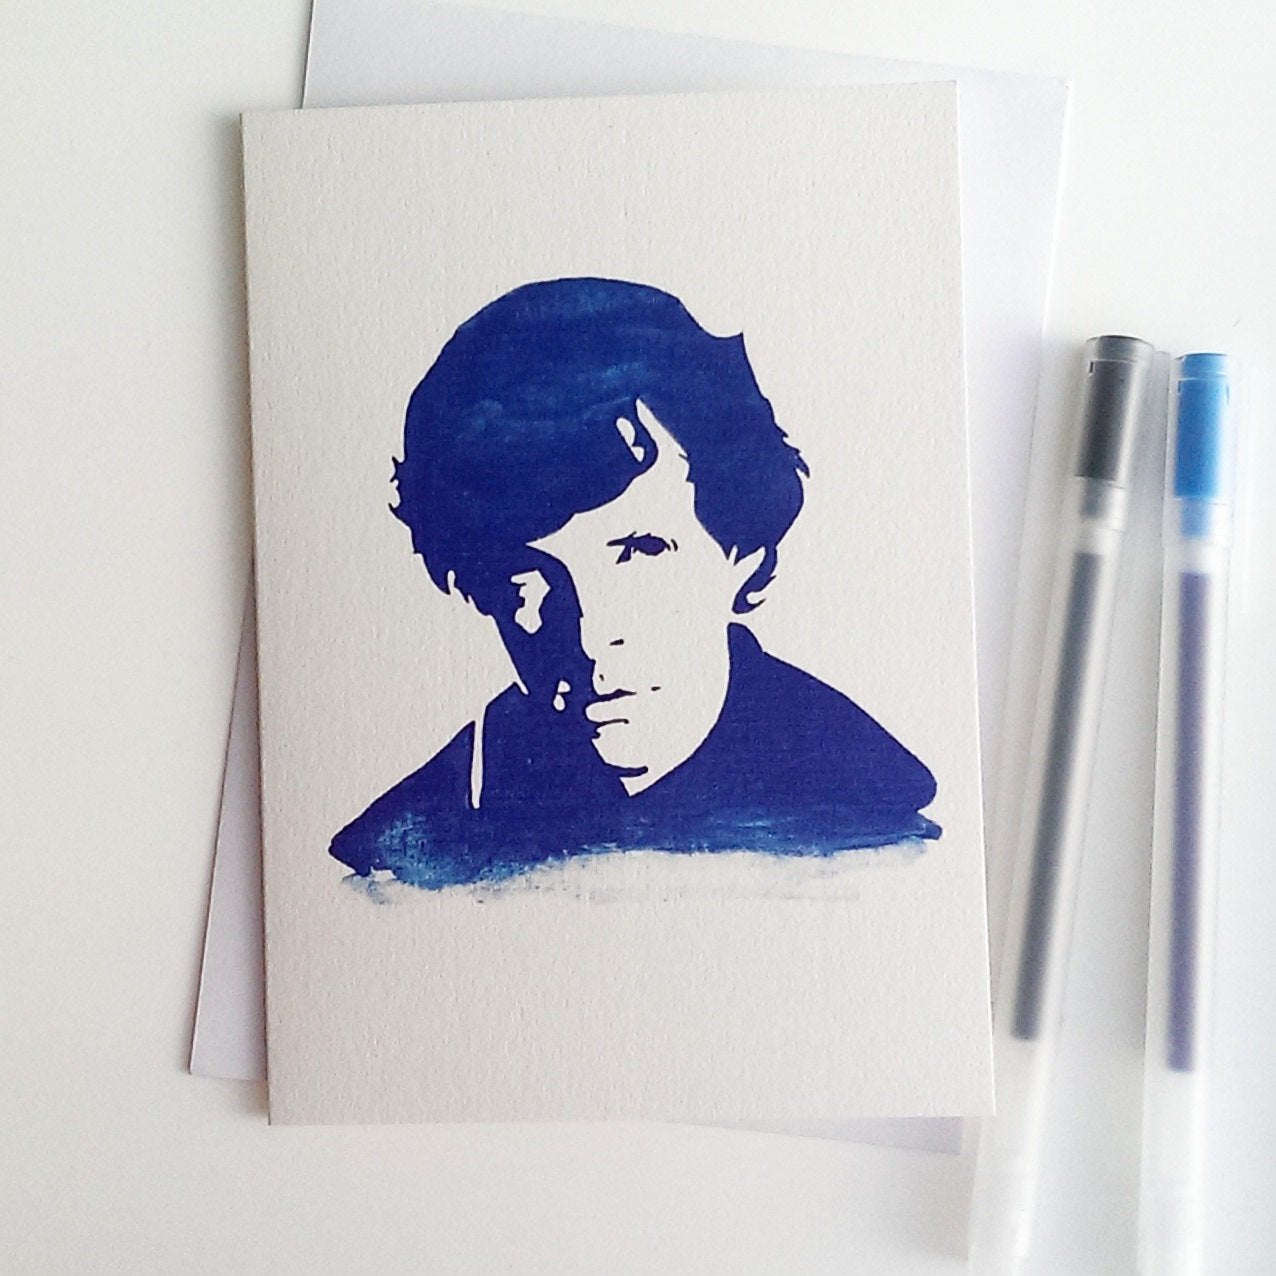 Benedict Cumberbatch, Sherlock Holmes, Star Trek, War Horse, Greetings Card - ByCandlelight27